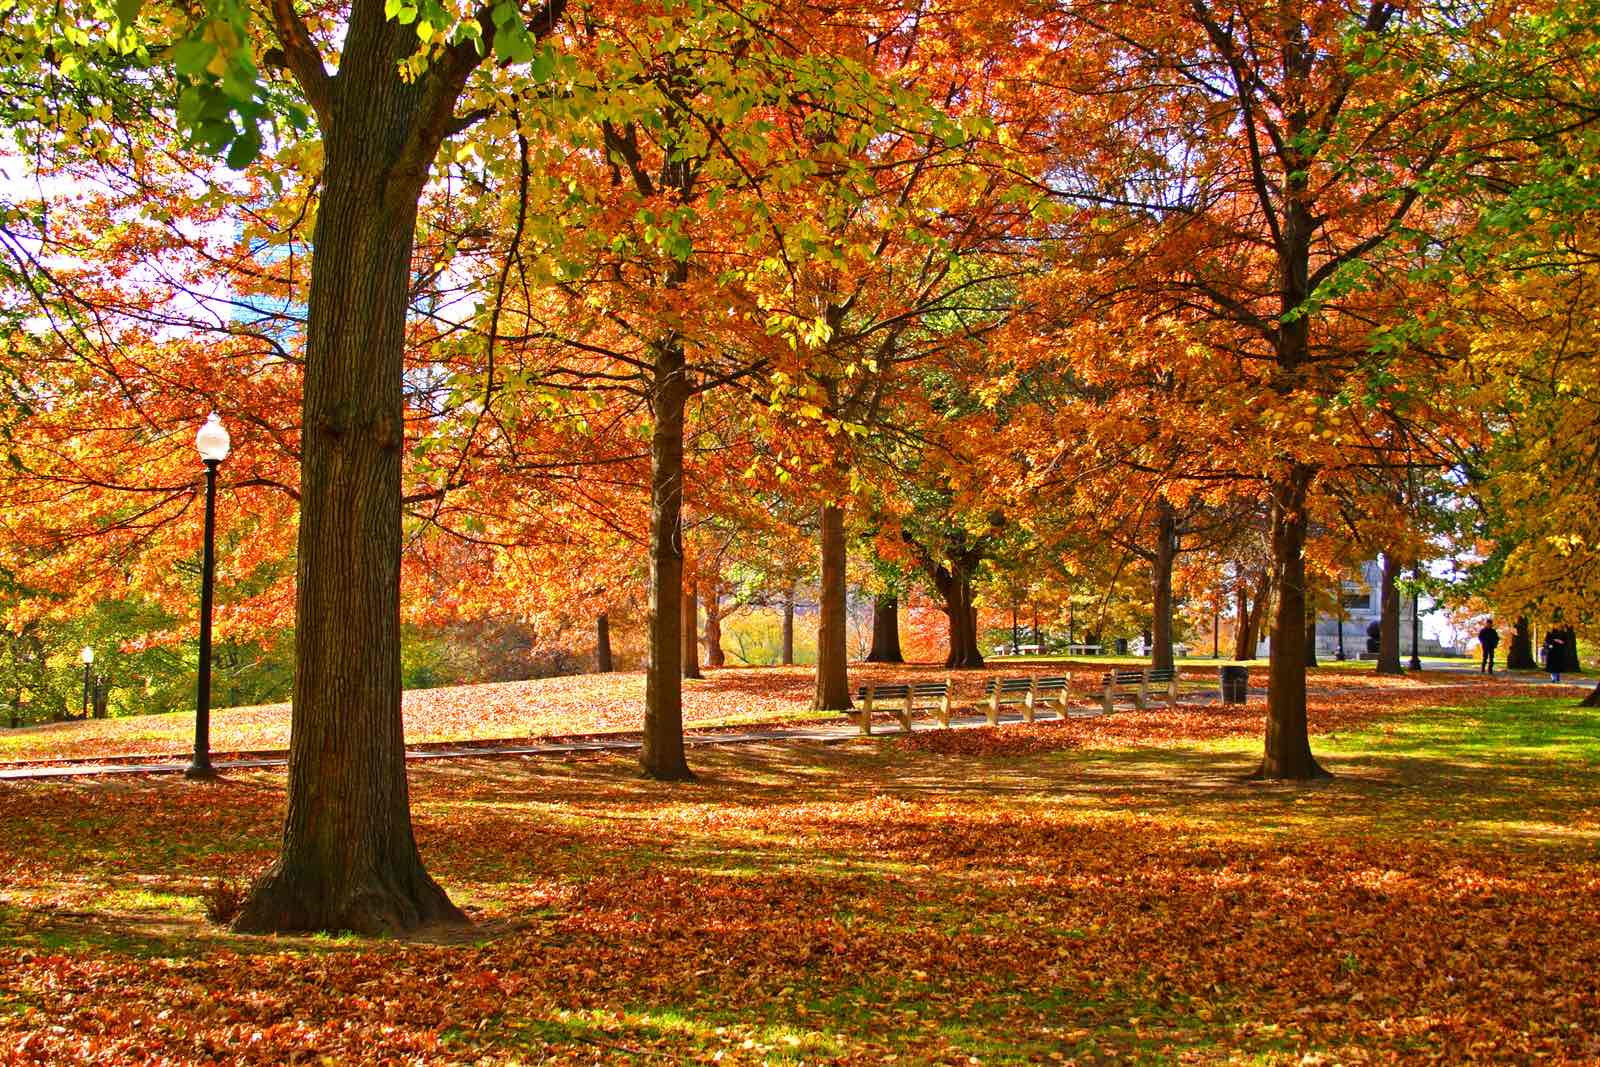 Autumn at One Greenway: Hot Spots for Fall Foliage